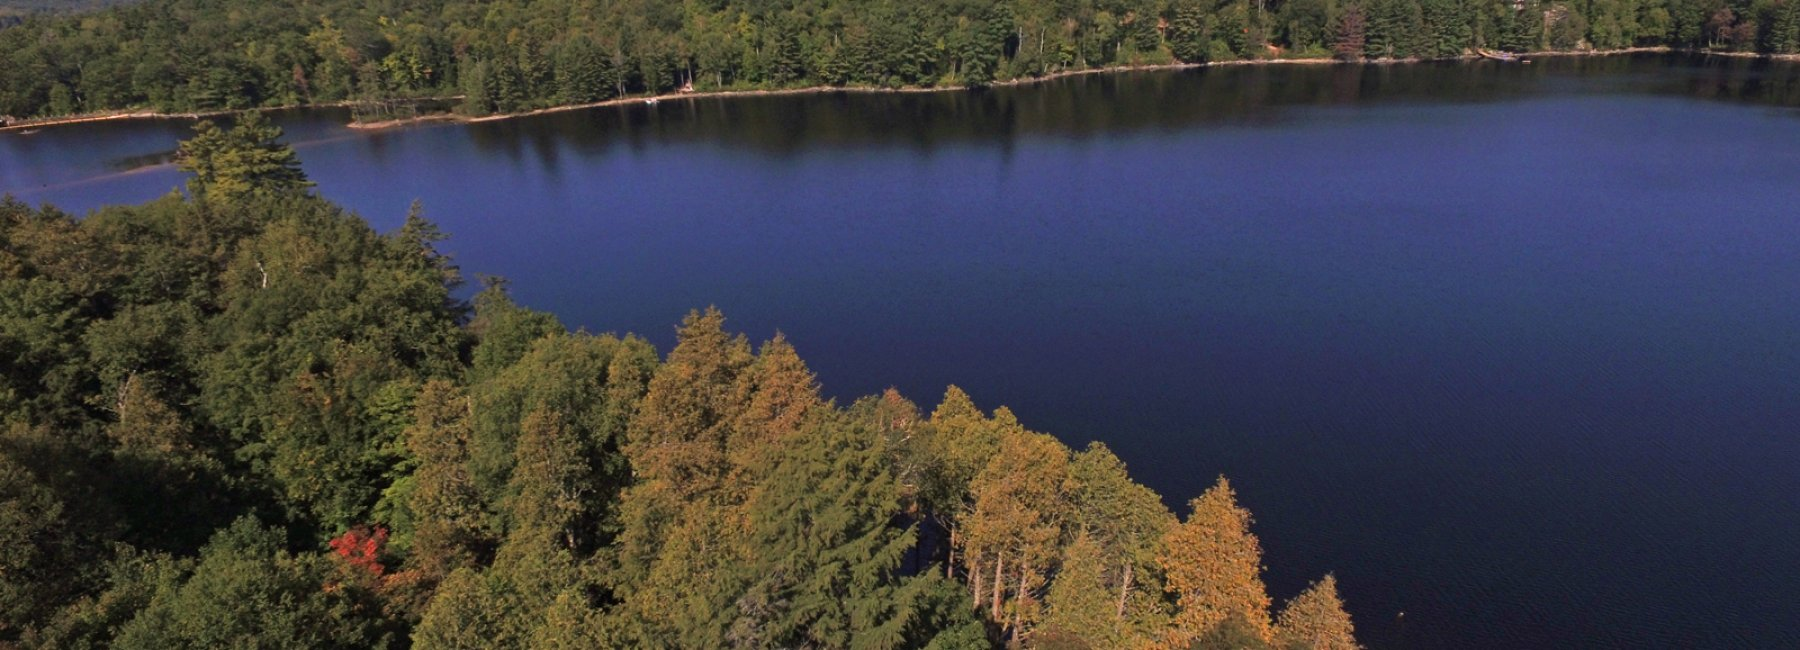 Lot 23, Flatwater Cove, Percy Lake, Haliburton